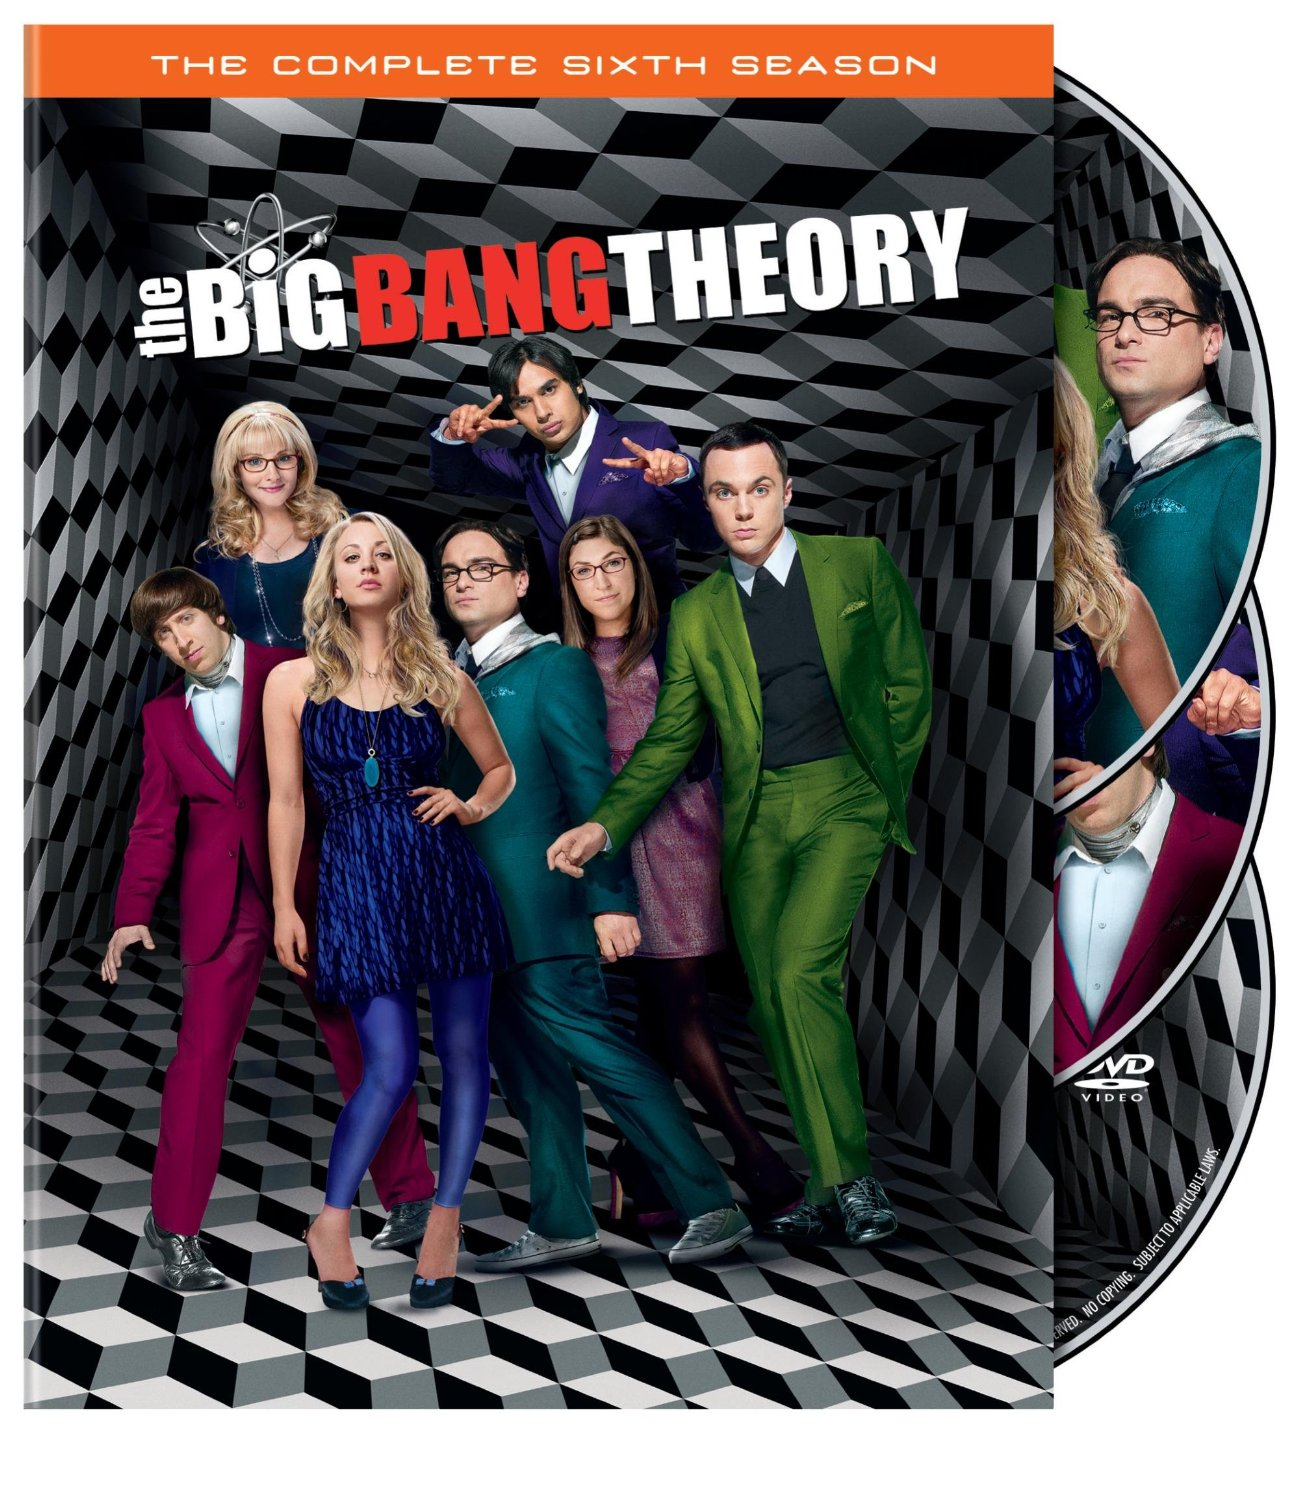 fringe big bang theory season 6 dvdKPonTV on Big Bang Theory Complete Sixth Season on DVDBluRay hizw5PE0